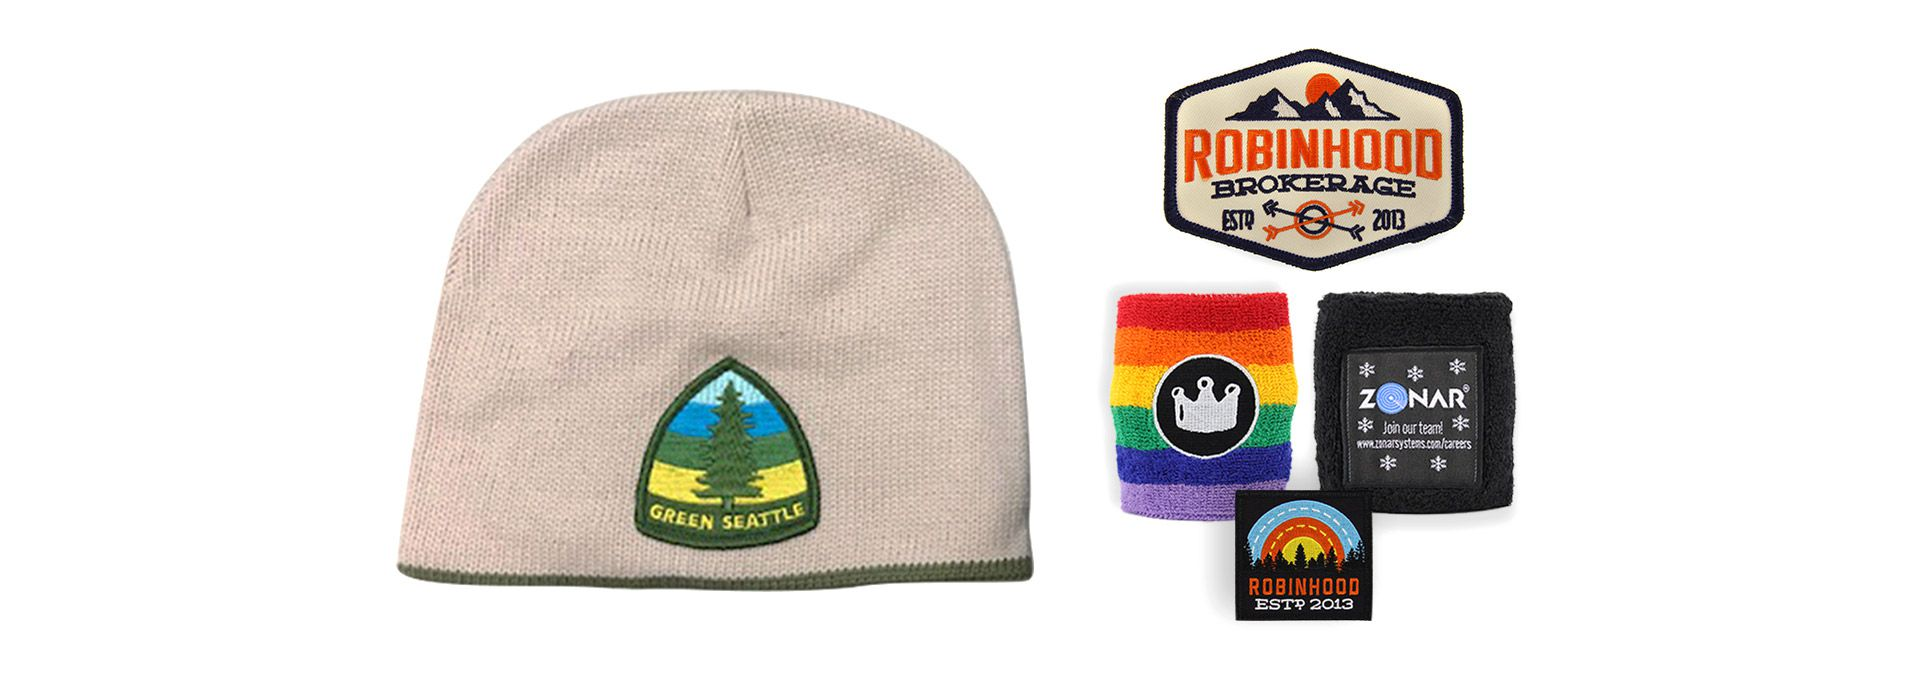 Custom Made Promotional Patches Seattle